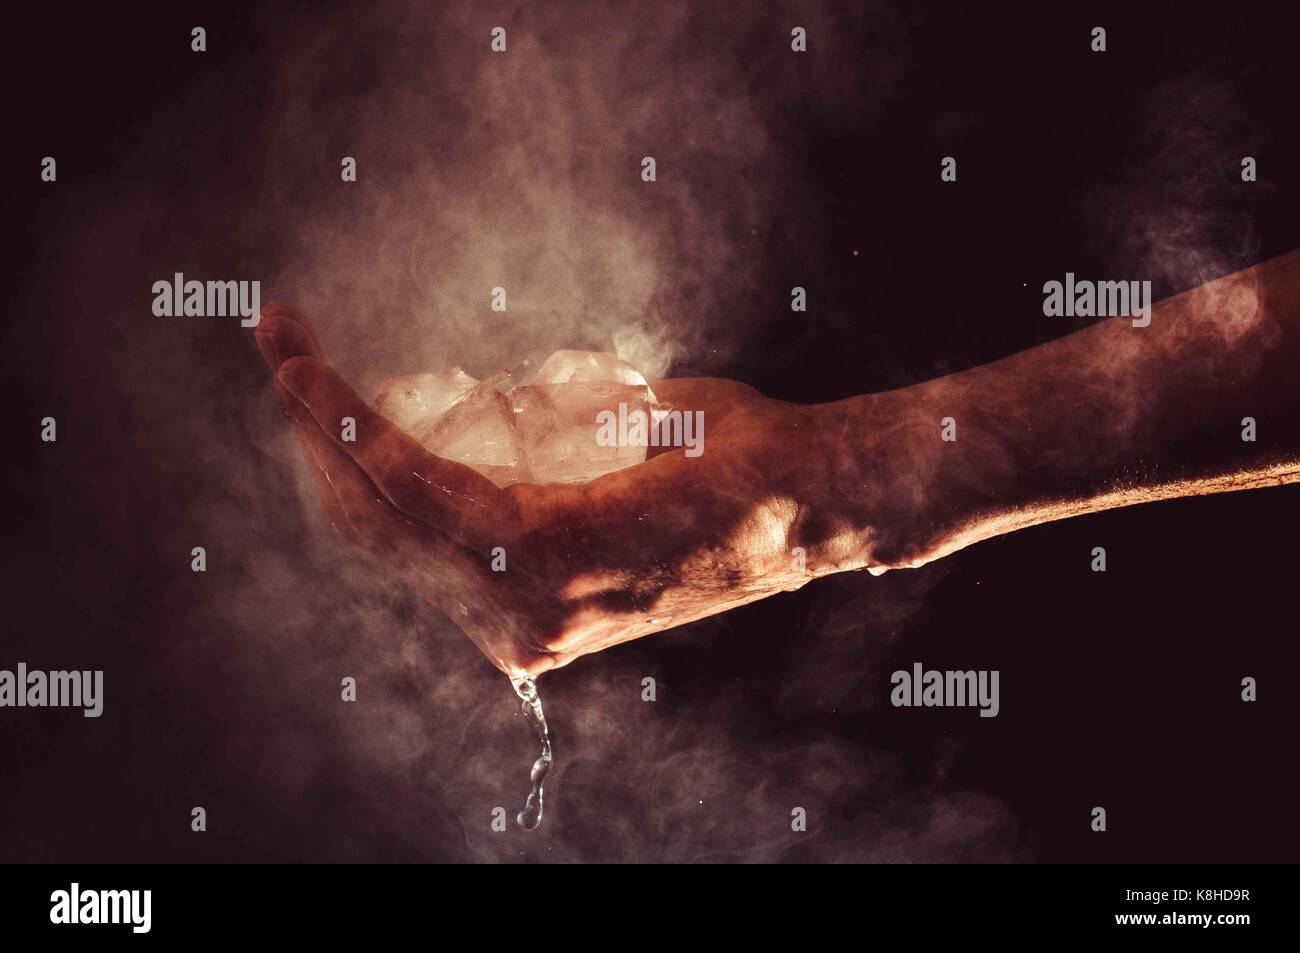 A hand is holding water in its three states: liquid, solid (ice), and gas (water vapor) - Stock Image